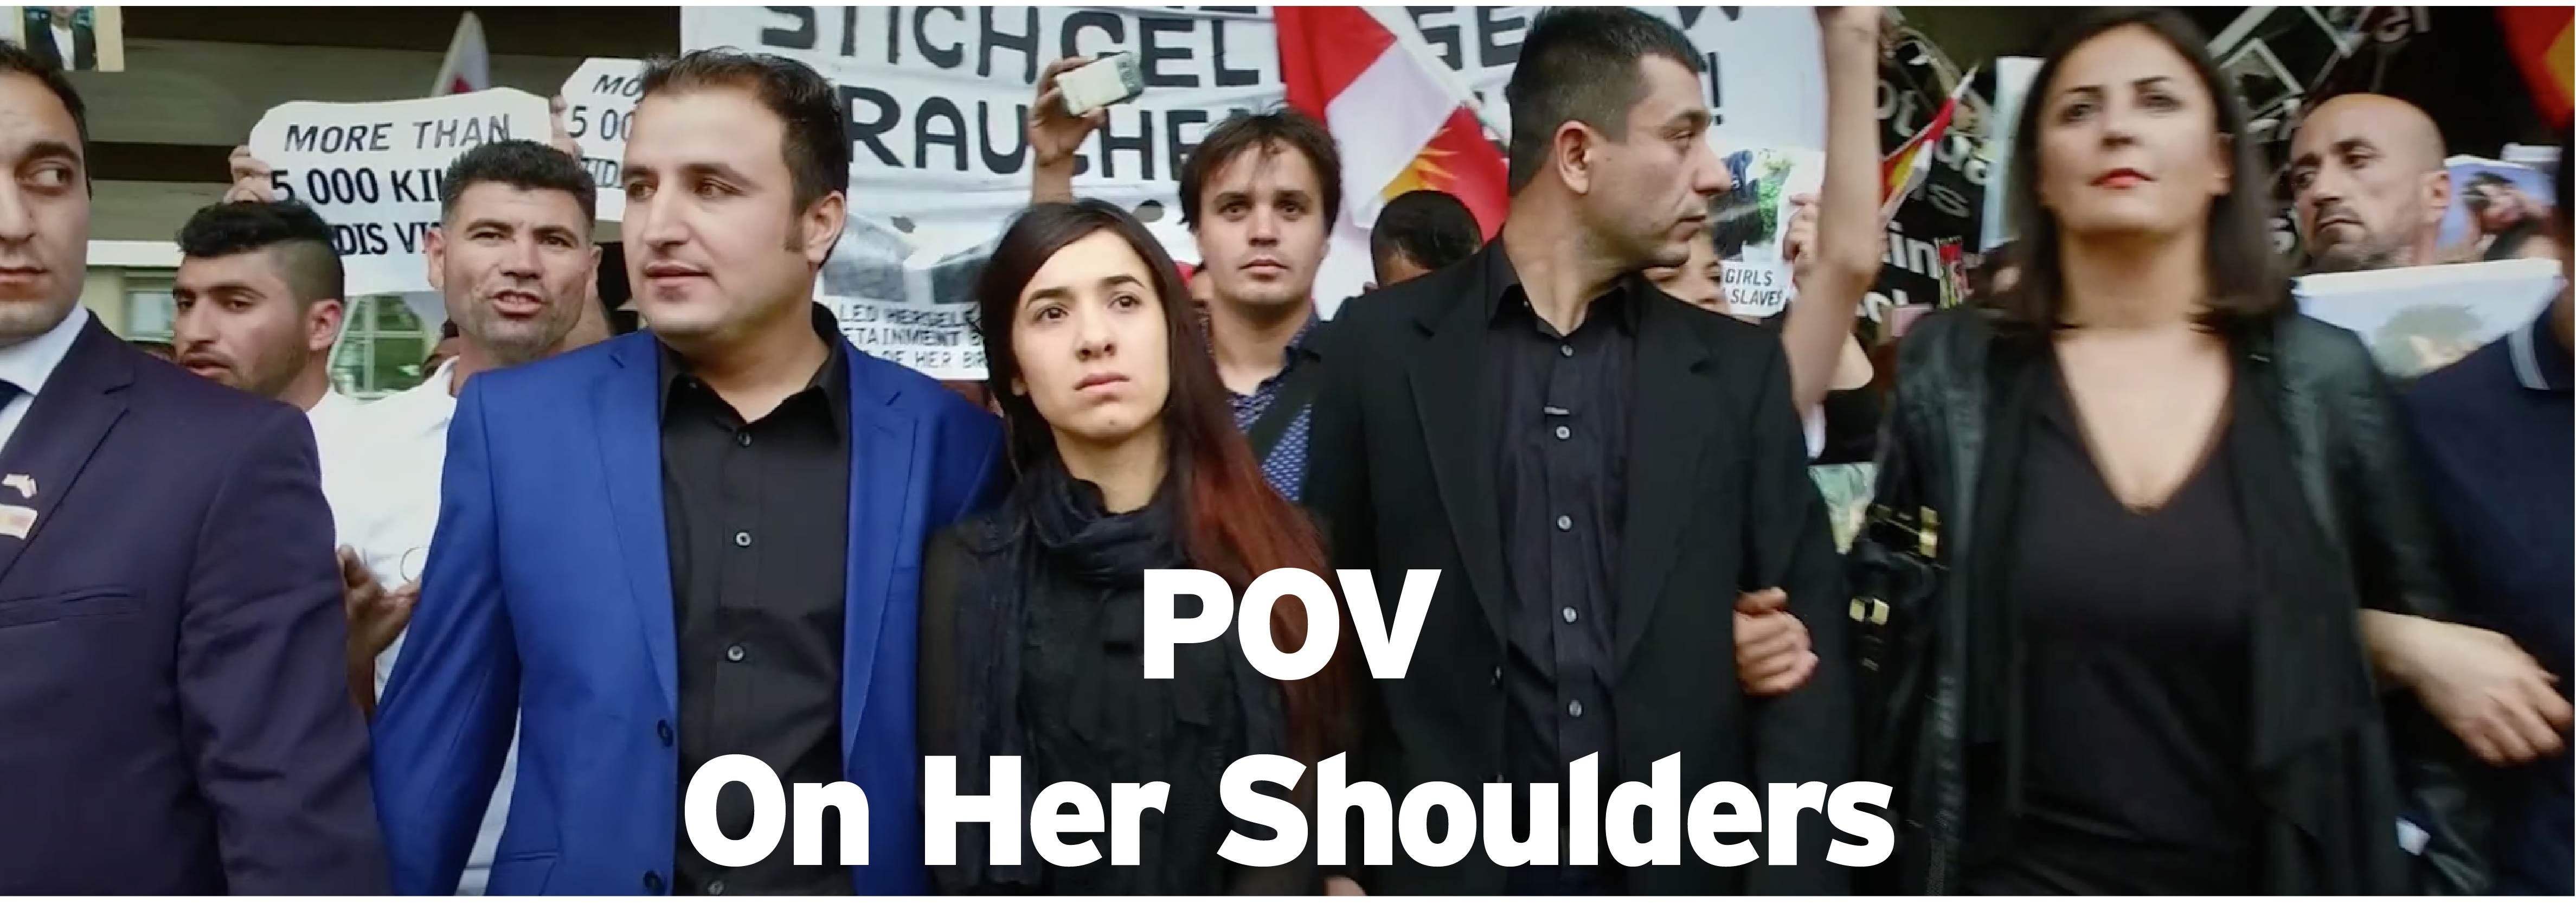 POV–On Her Shoulders Monday, July 22 at 10 p.m. on WCNY-TV